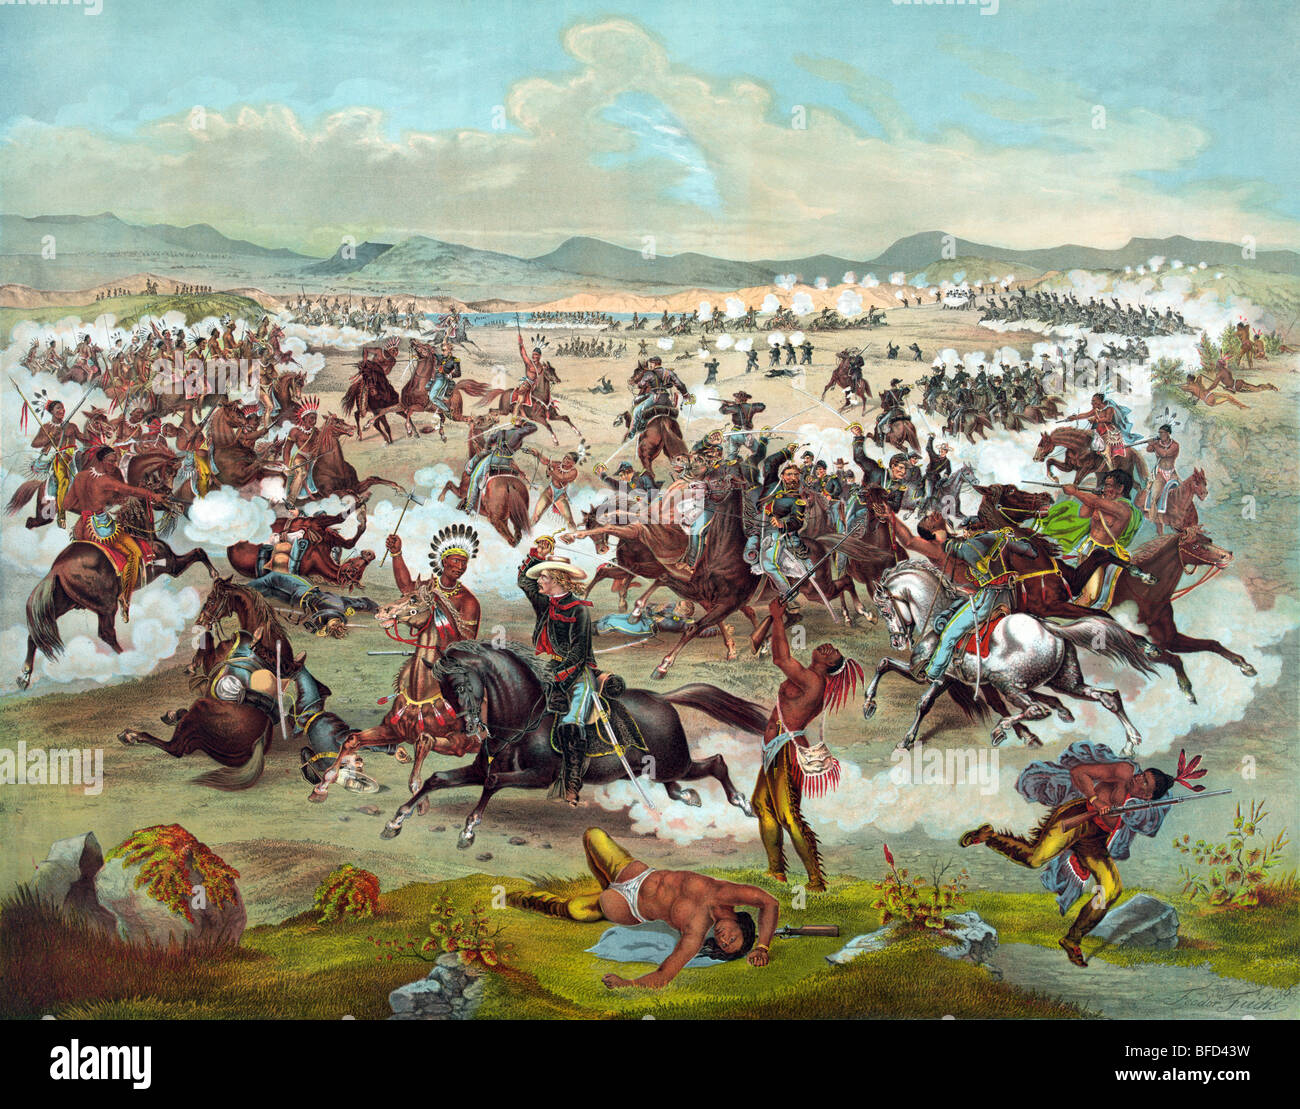 Print depicting Custer's Last Stand with the US 7th Cavalry at the Battle of the Little Bighorn in 1876. Stock Photo